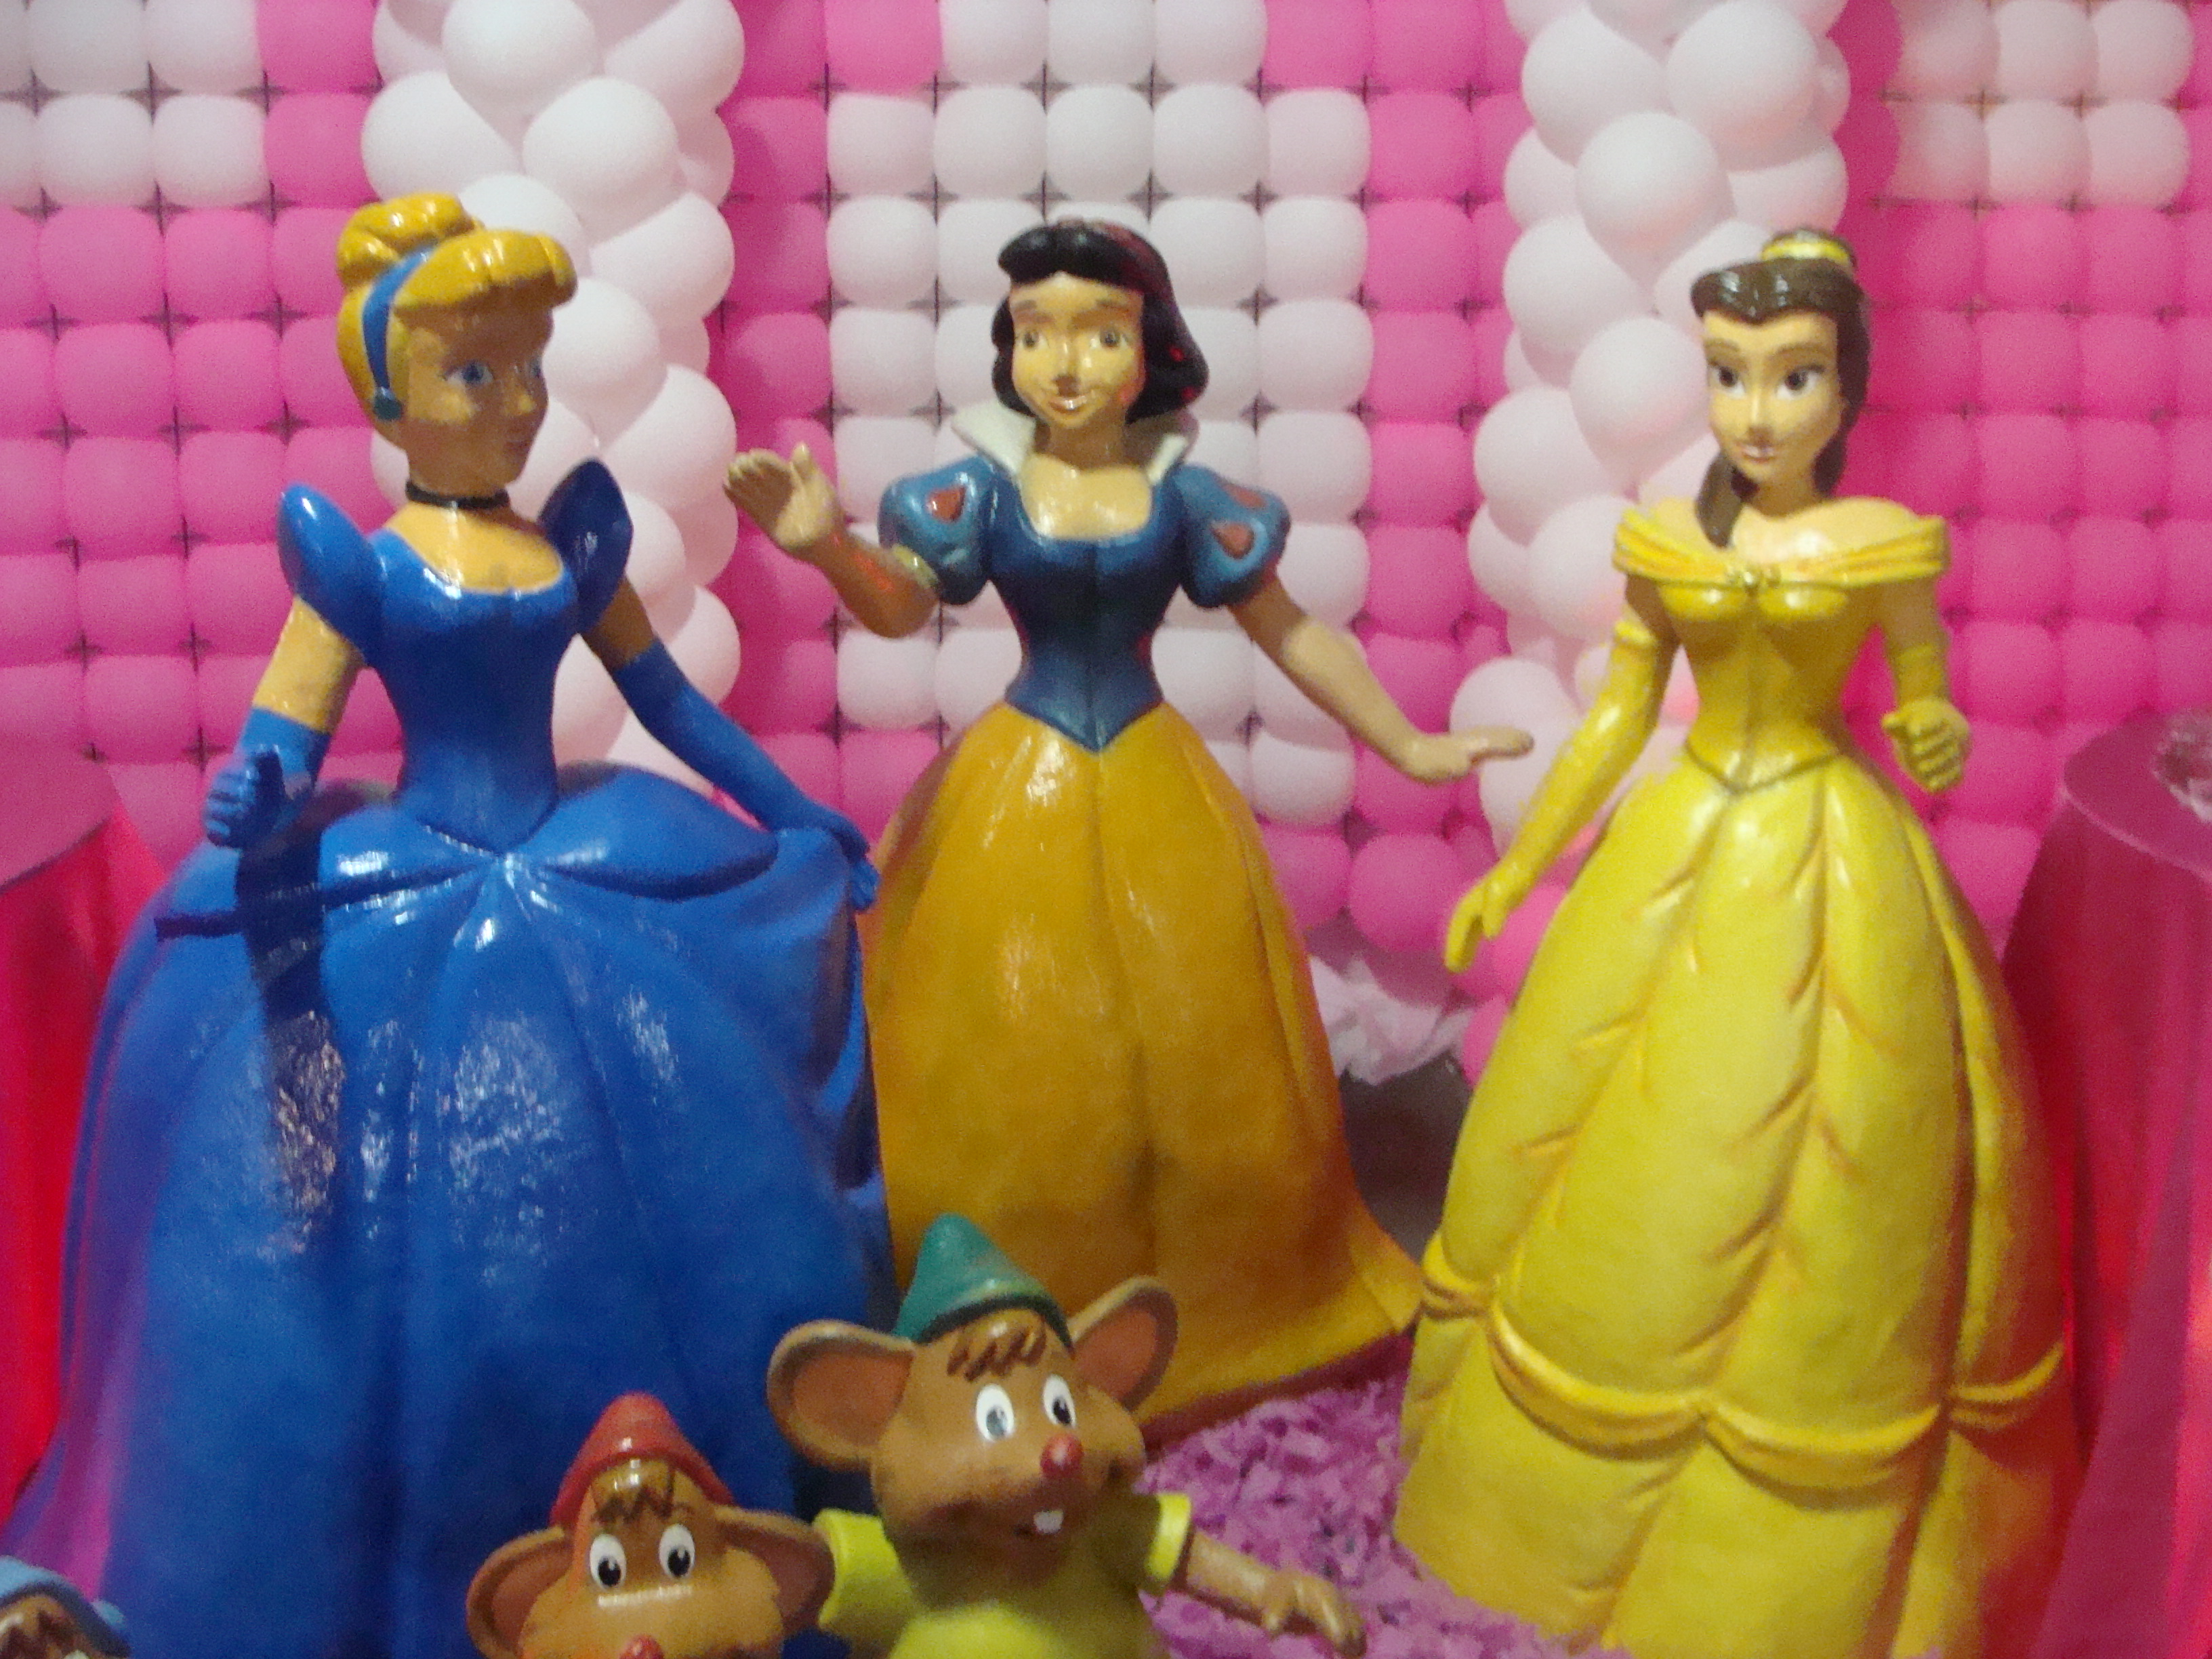 Tags As Princesas As Princesas Cenario As Princesas Cenario Bh As Tres